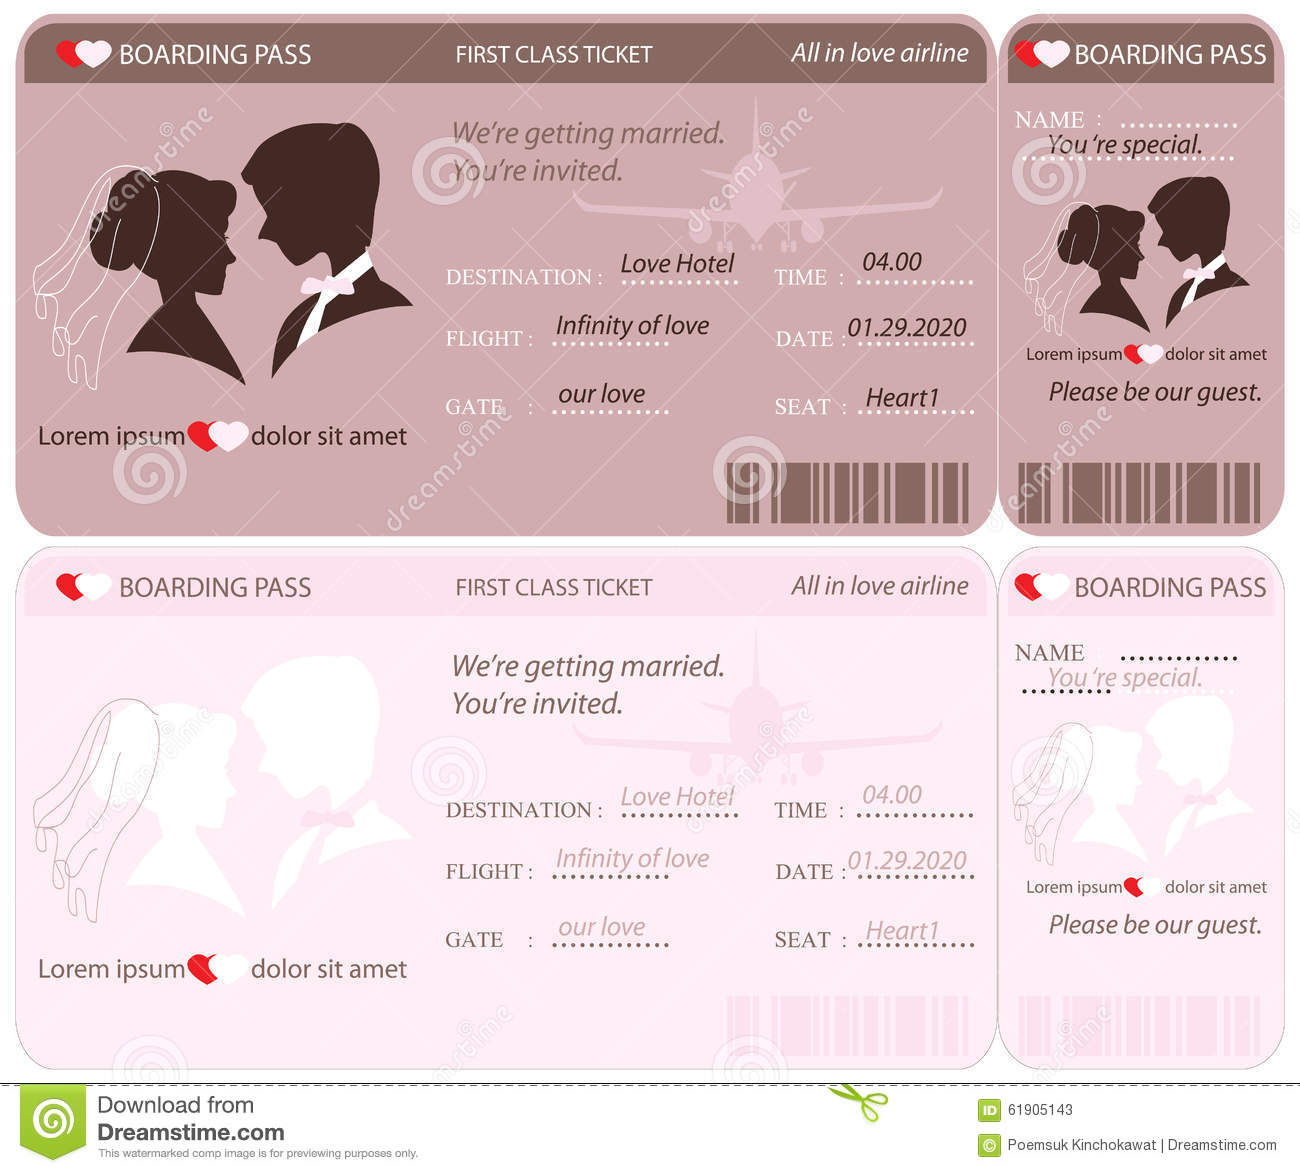 boarding pass invitation template